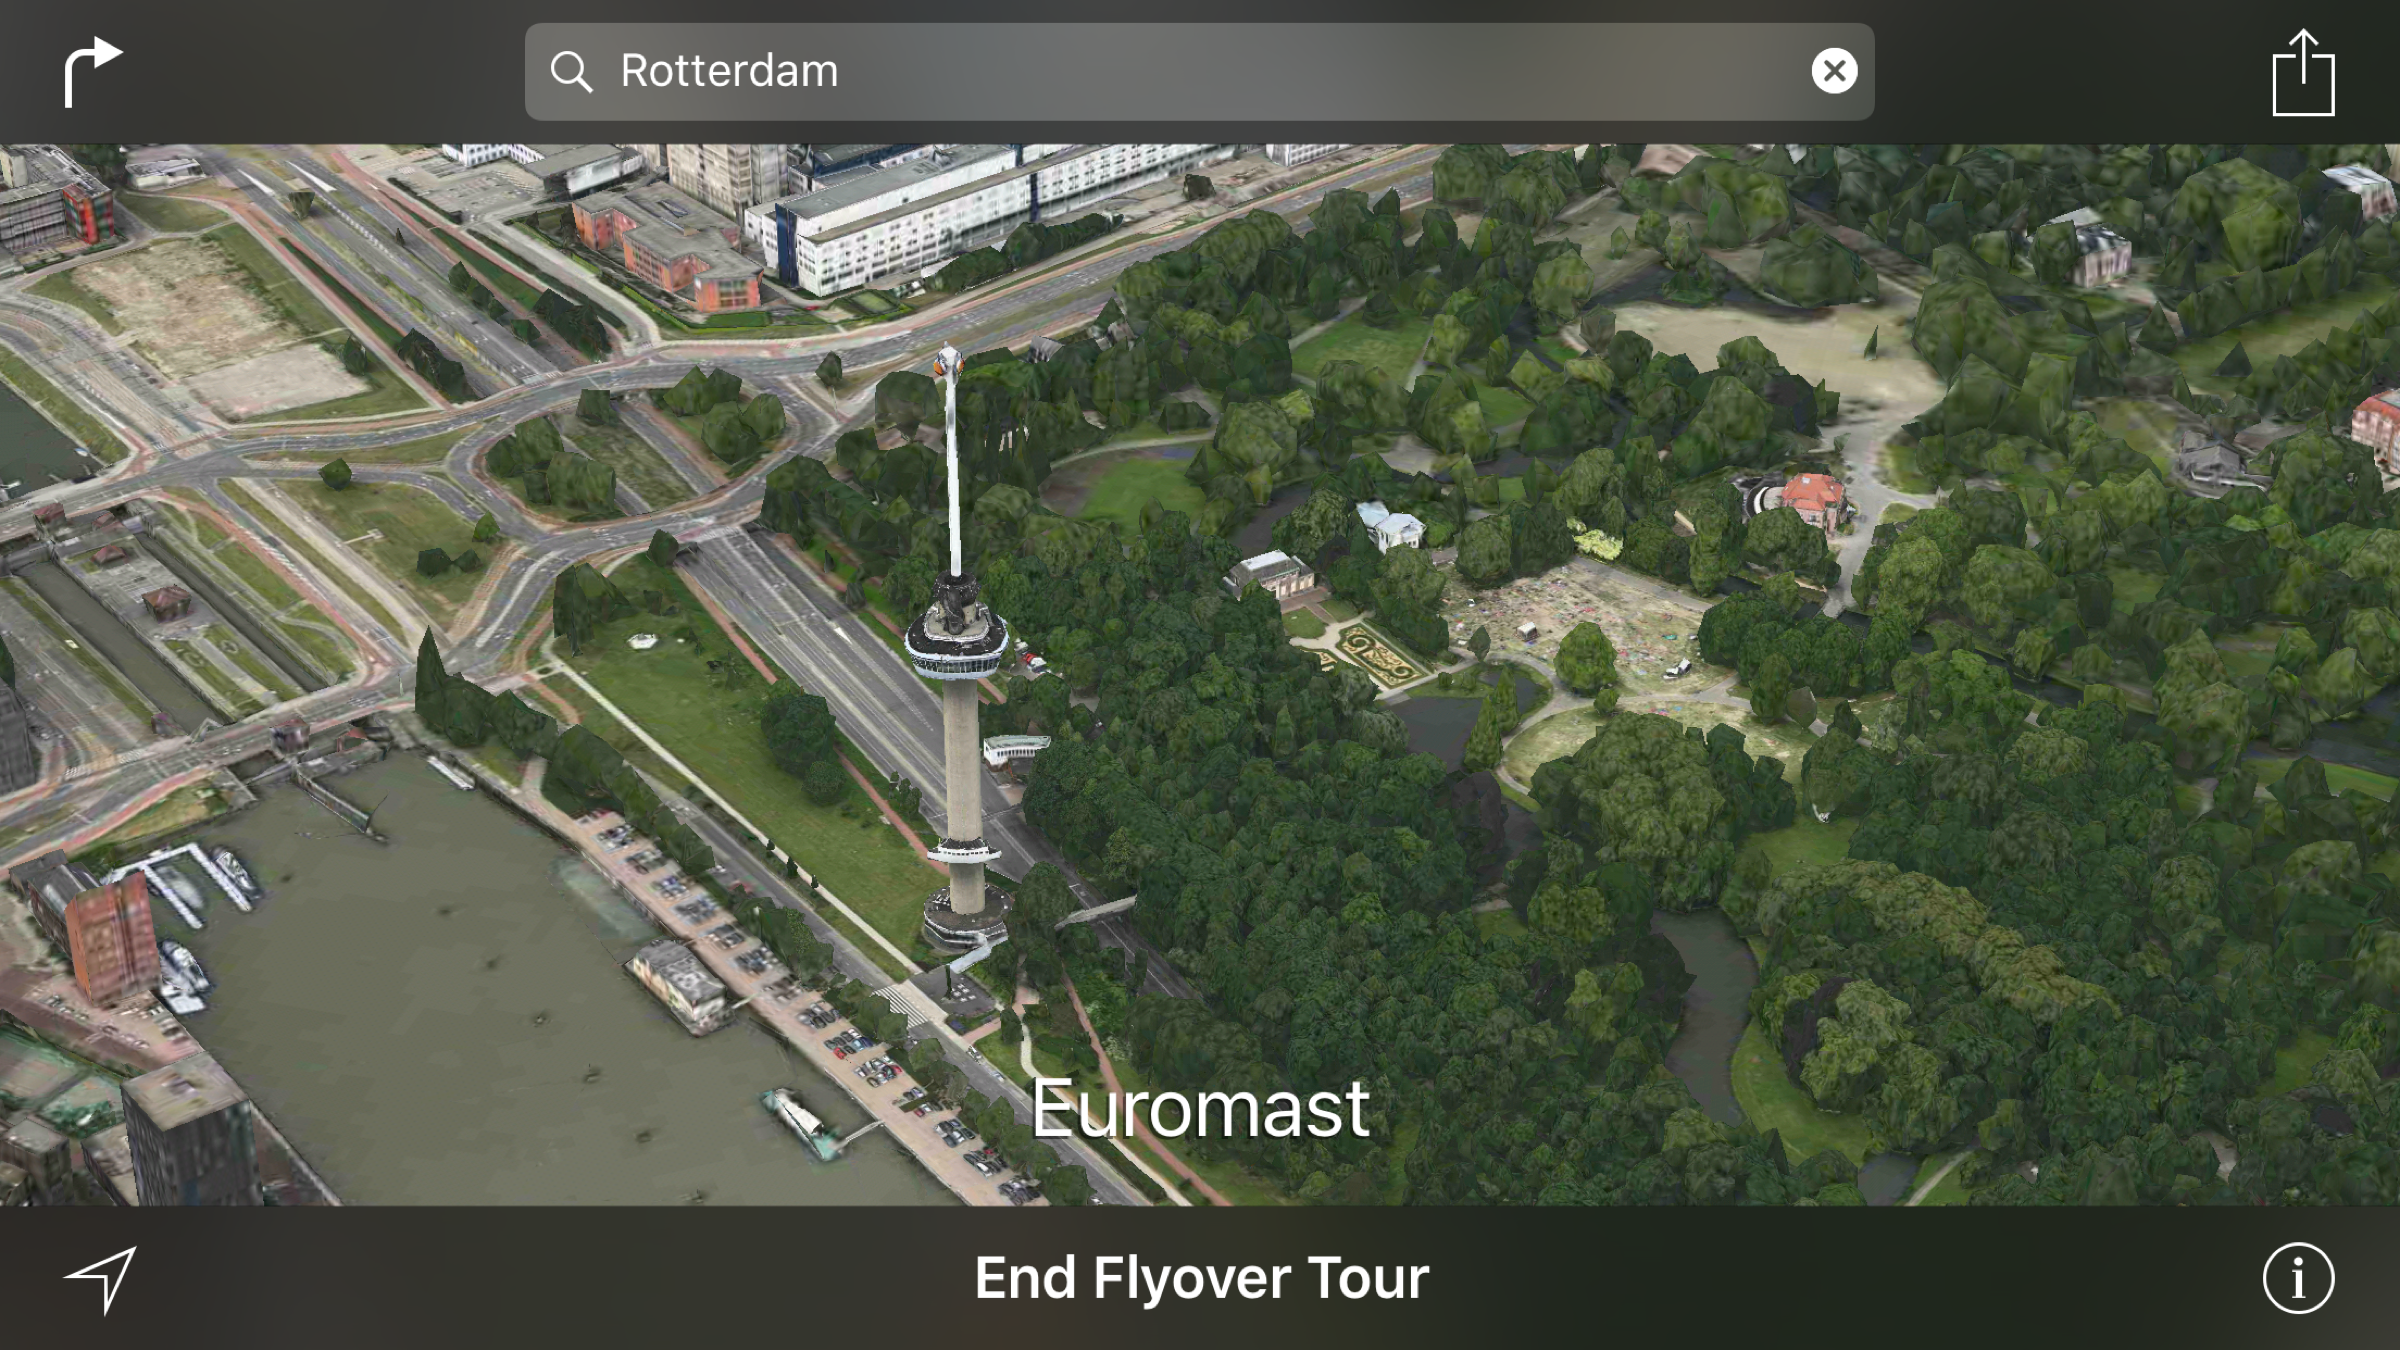 You can now flyover Rotterdam, Budapest and more in Maps